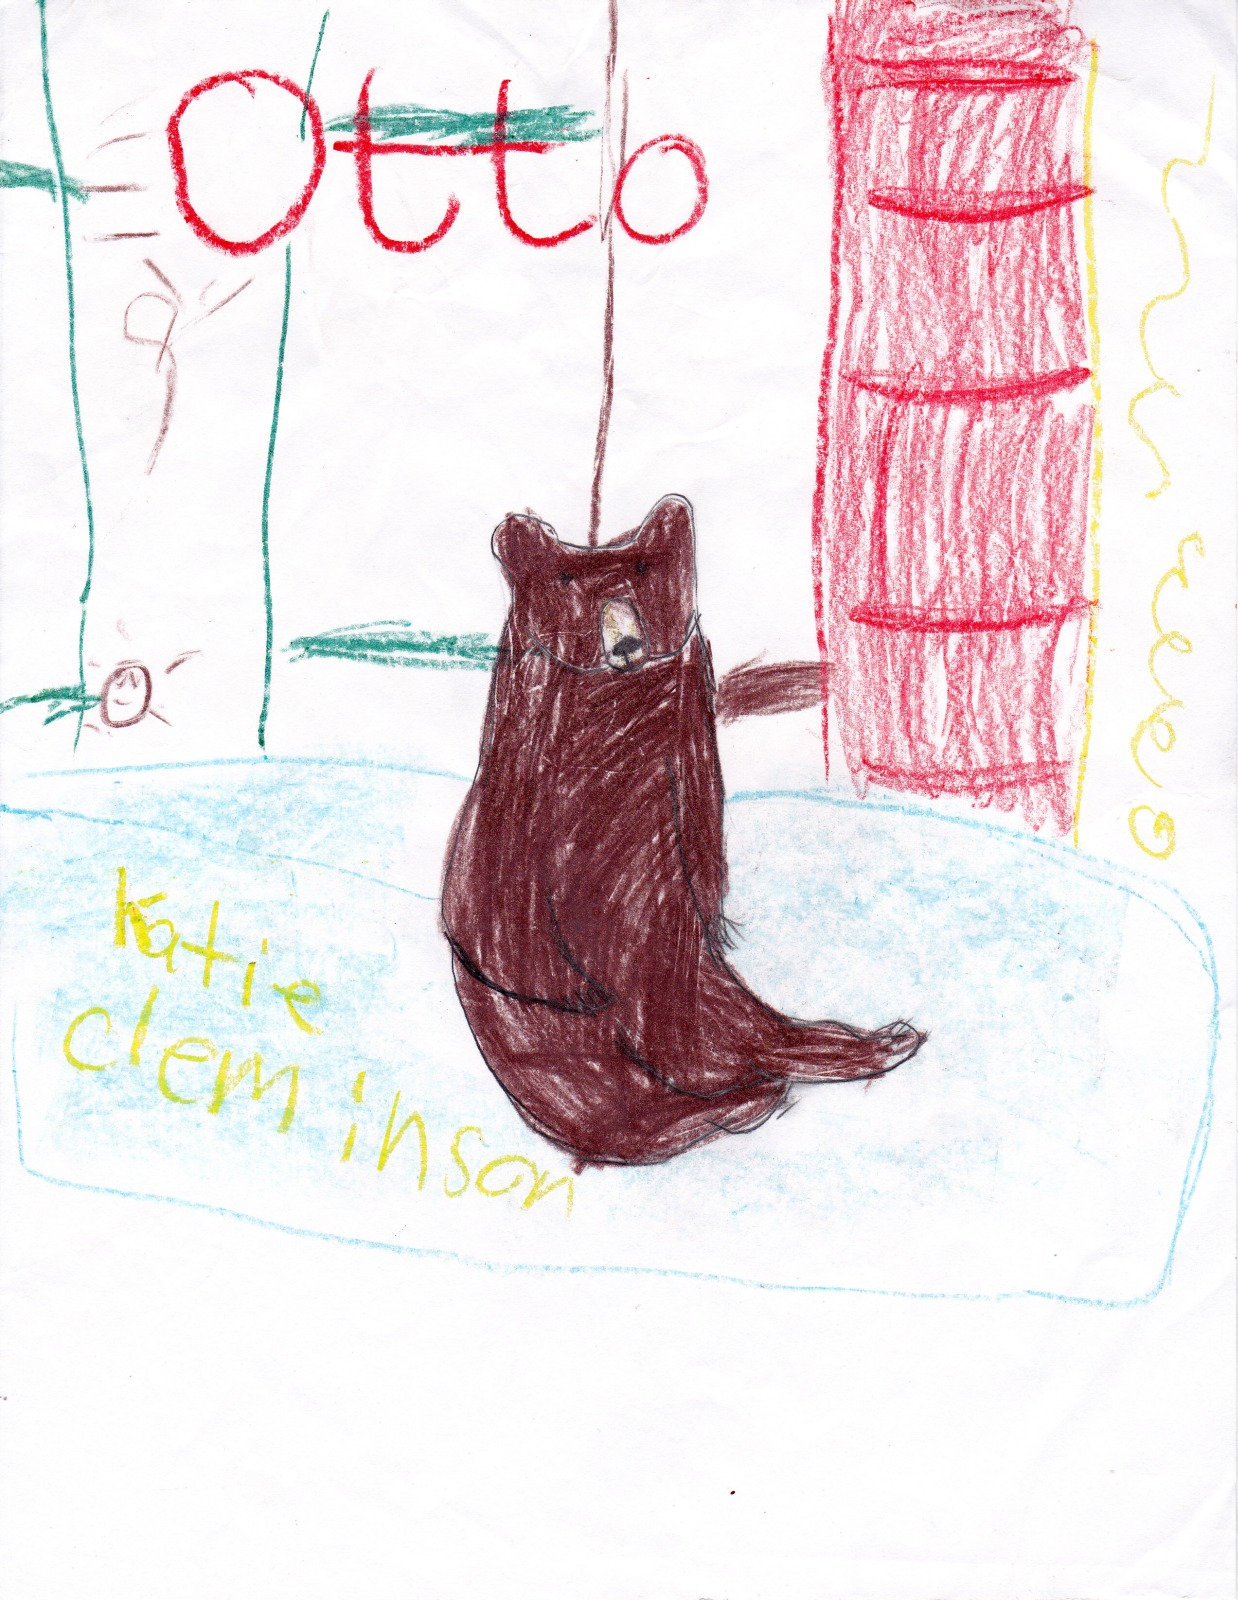 Otto Bear, artwork by Natalie Carlson